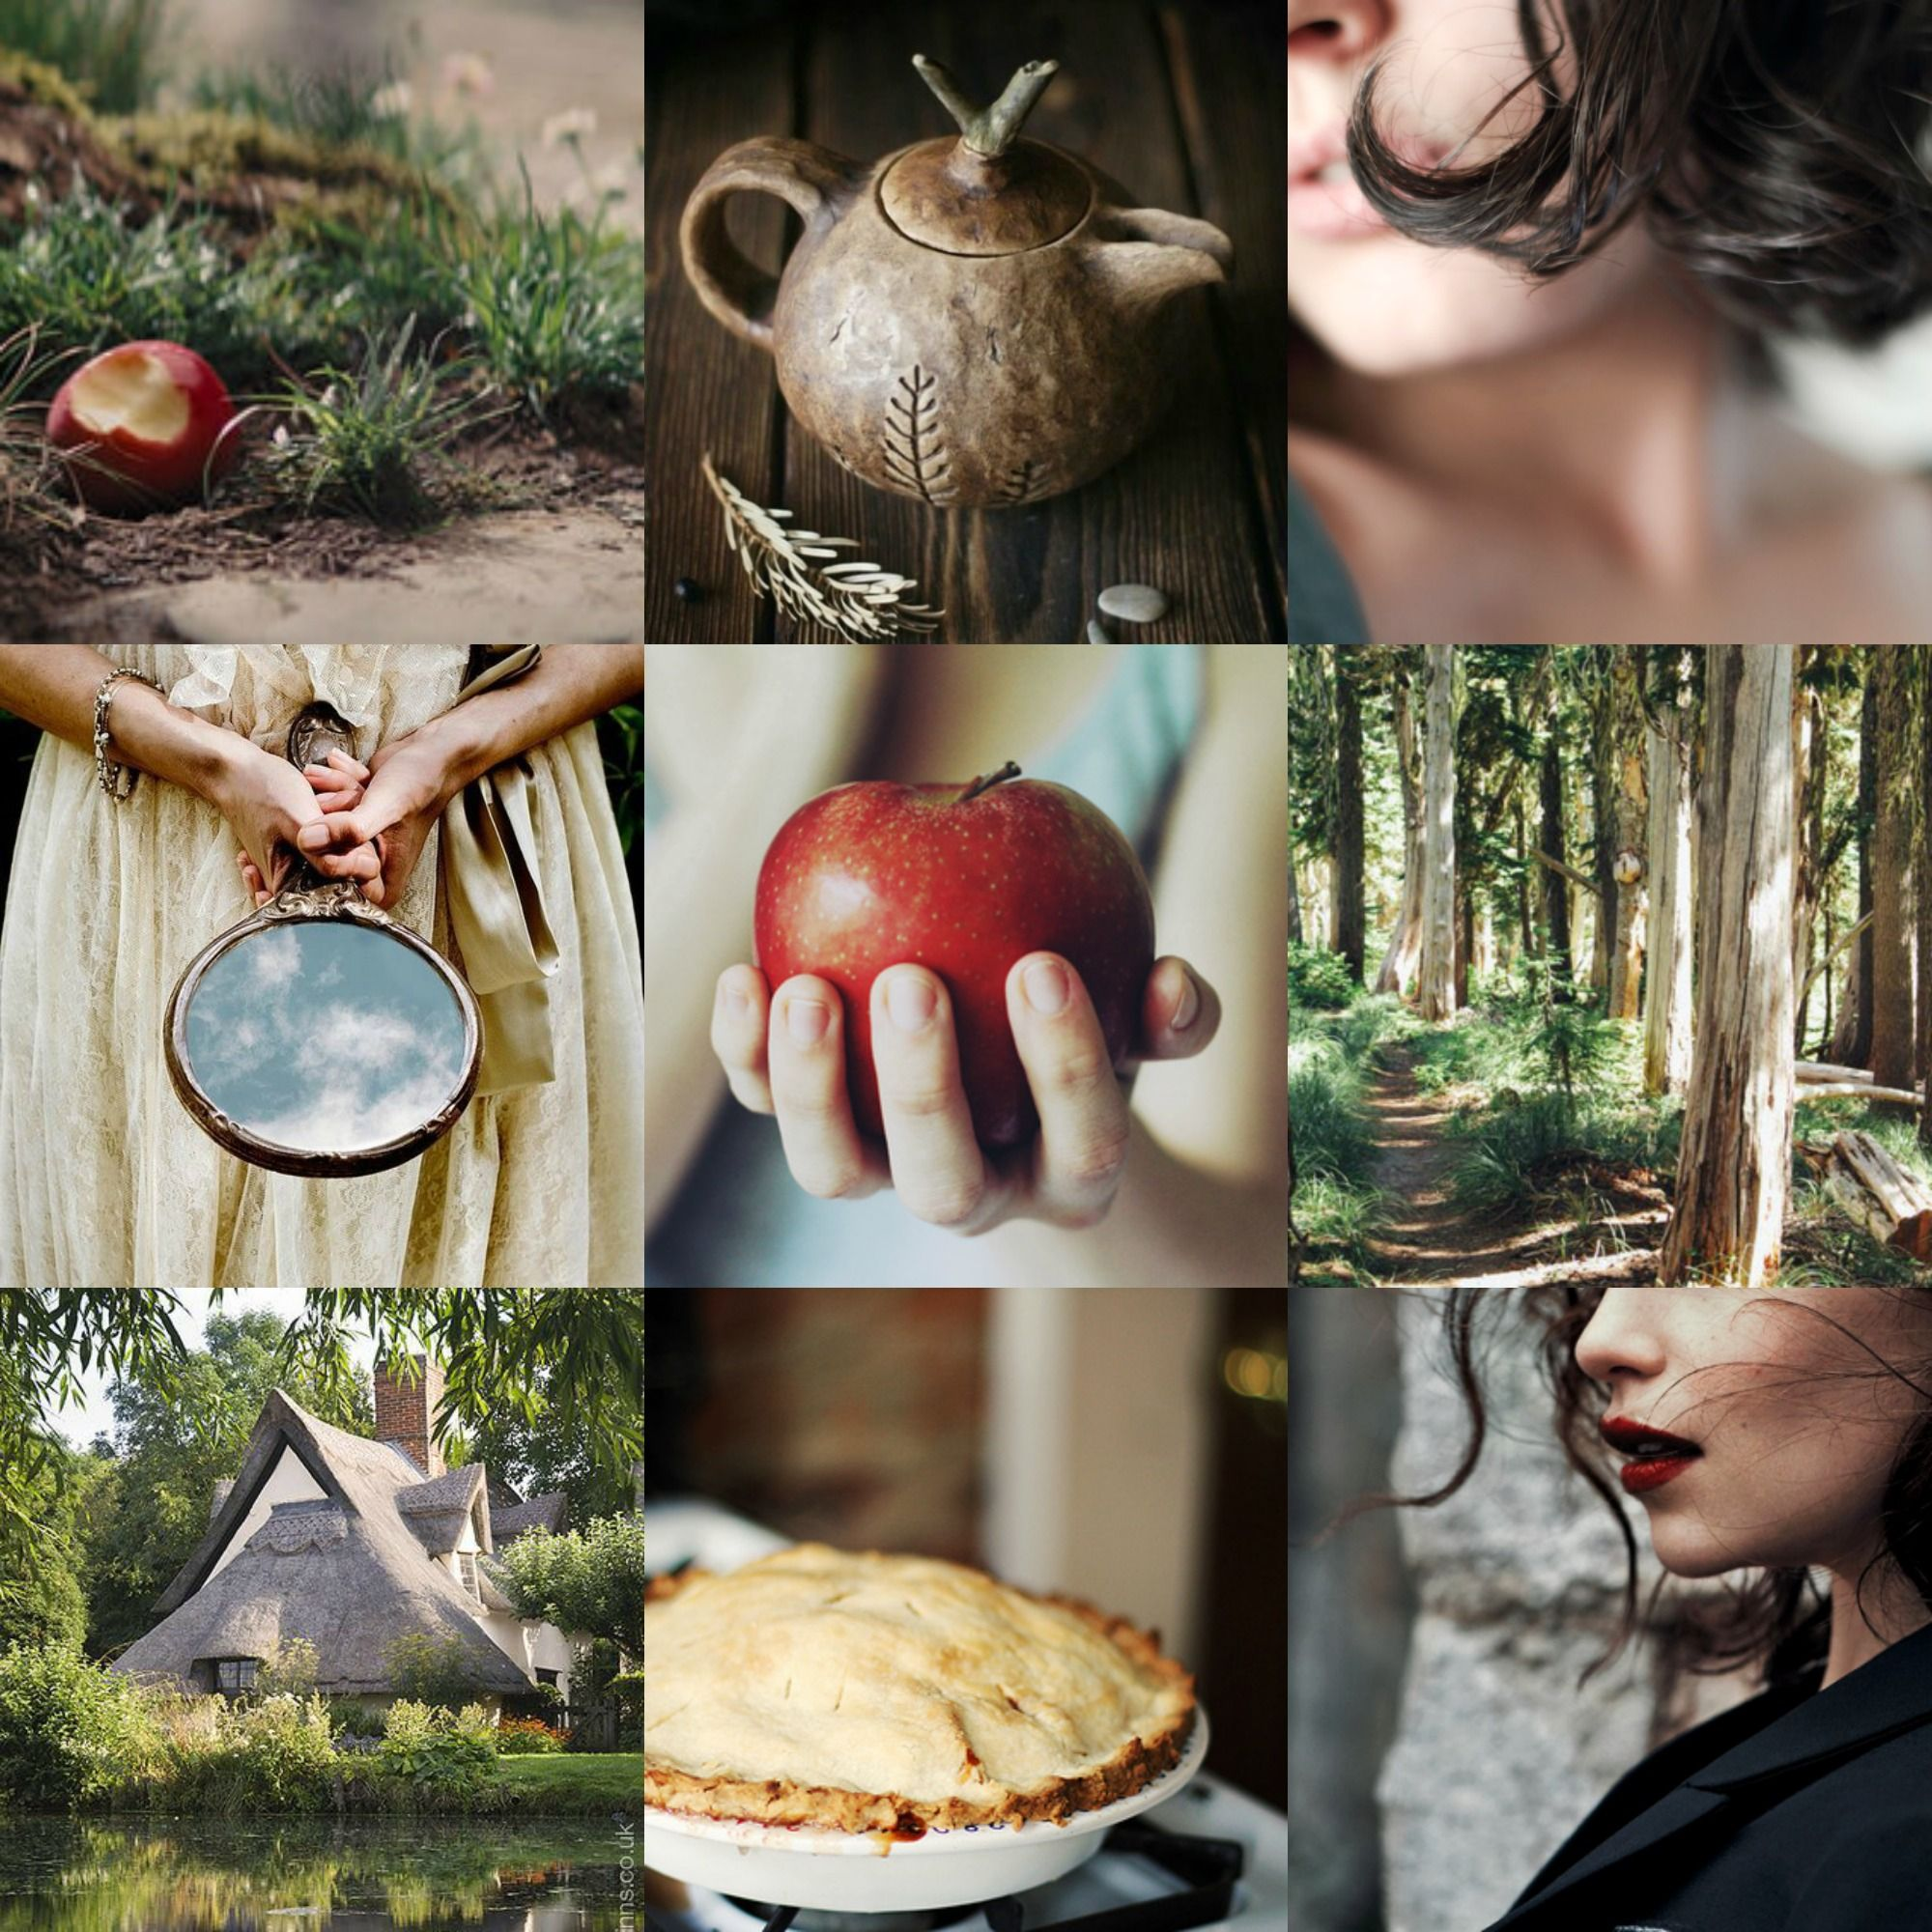 Disney Princess aesthetics #snowwhite